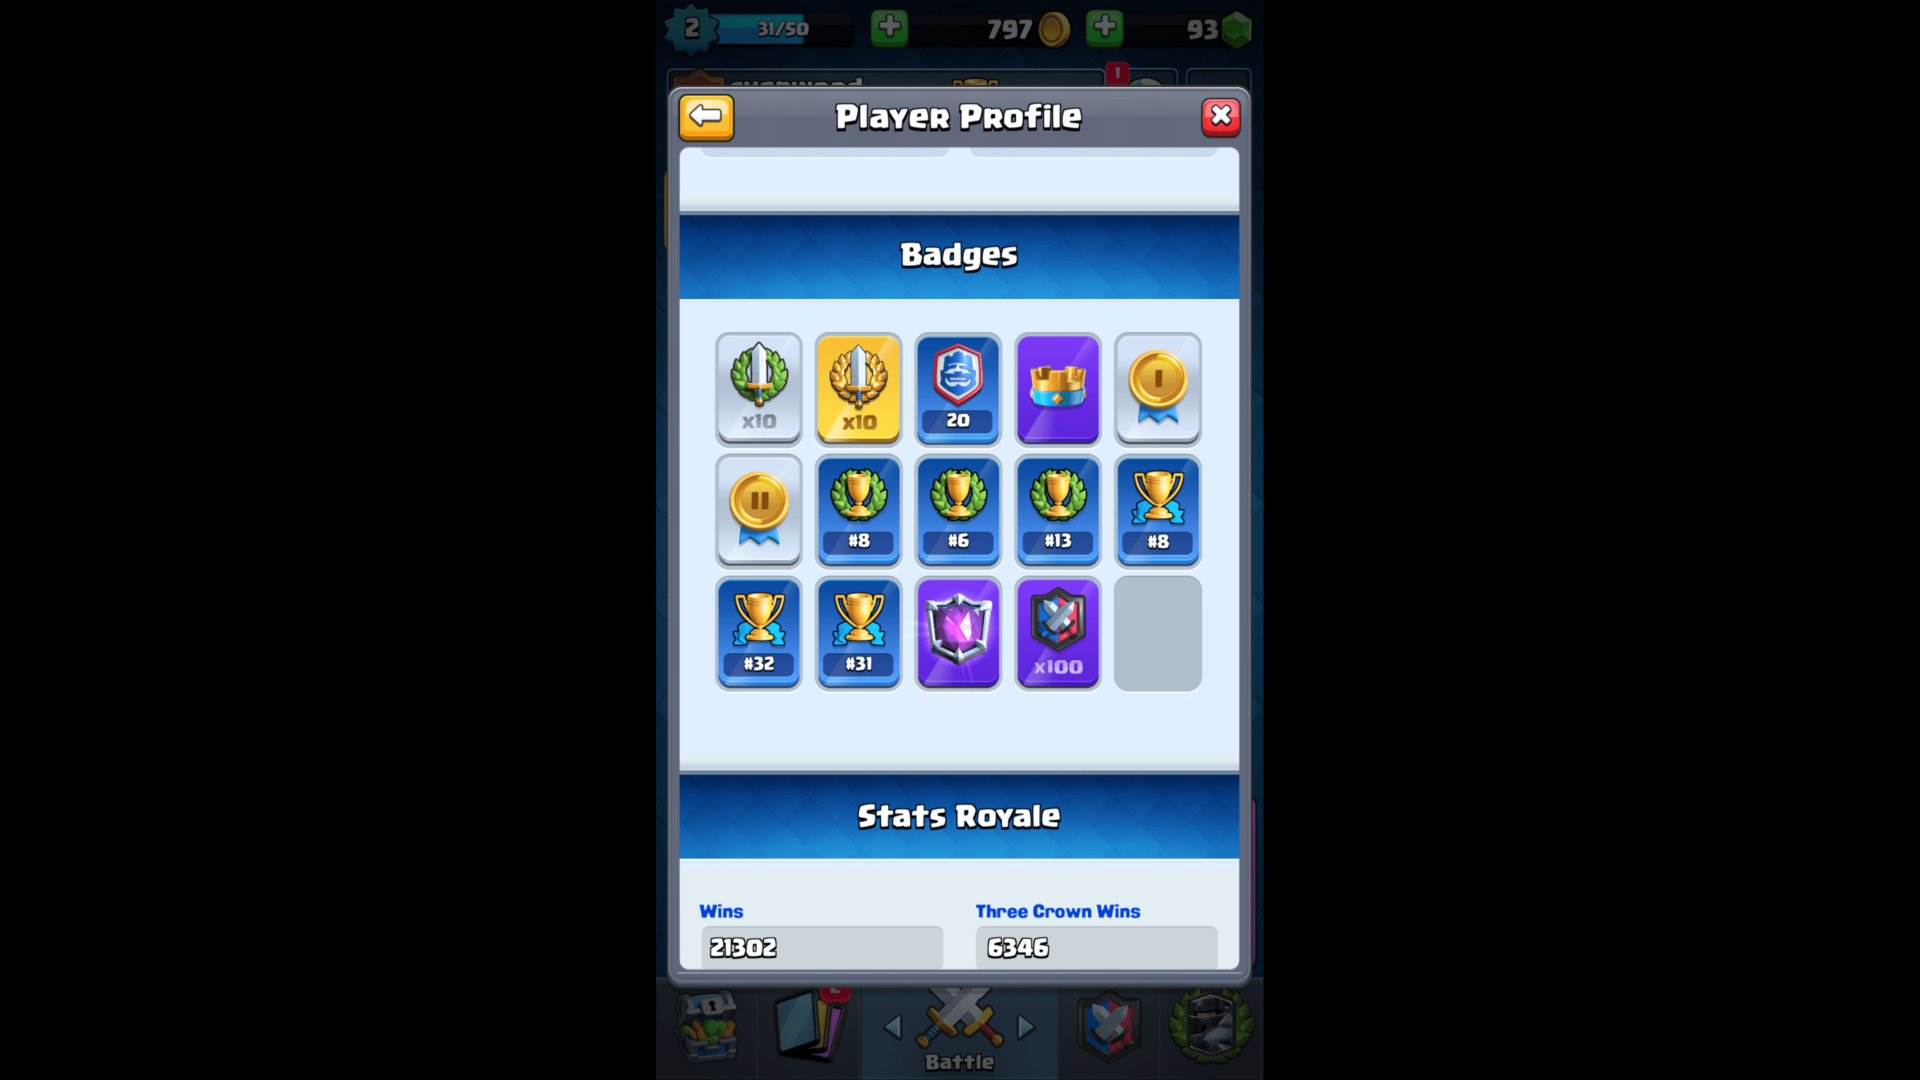 Badges screenshot of Clash Royale video game interface.